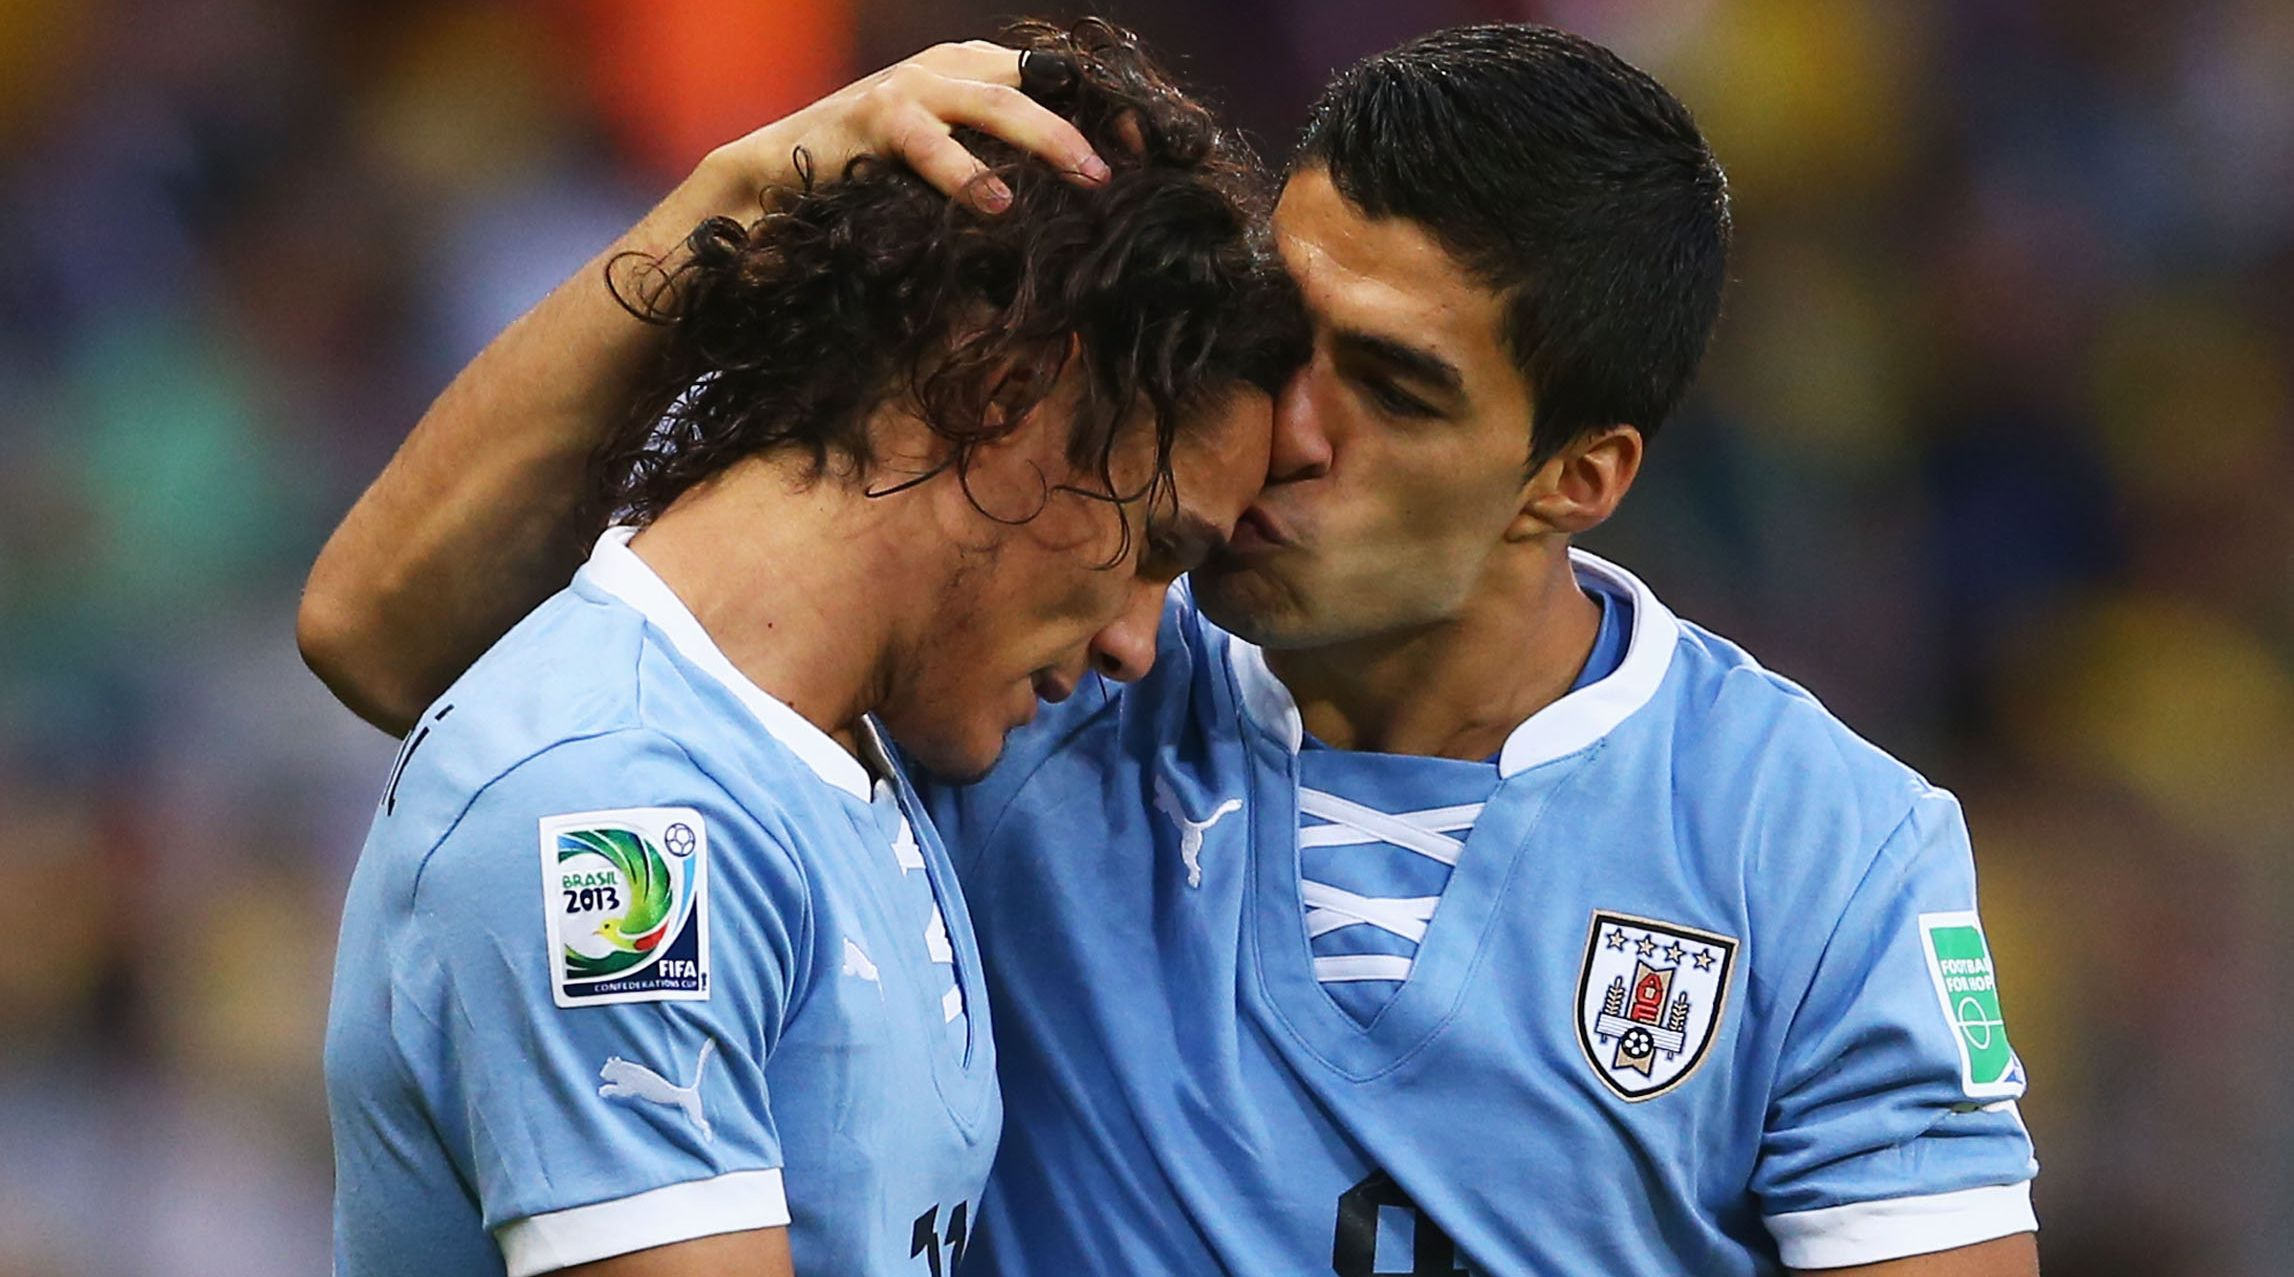 Cavani tipped for 'emotional' link up with Suarez at Atletico Madrid over Manchester United move